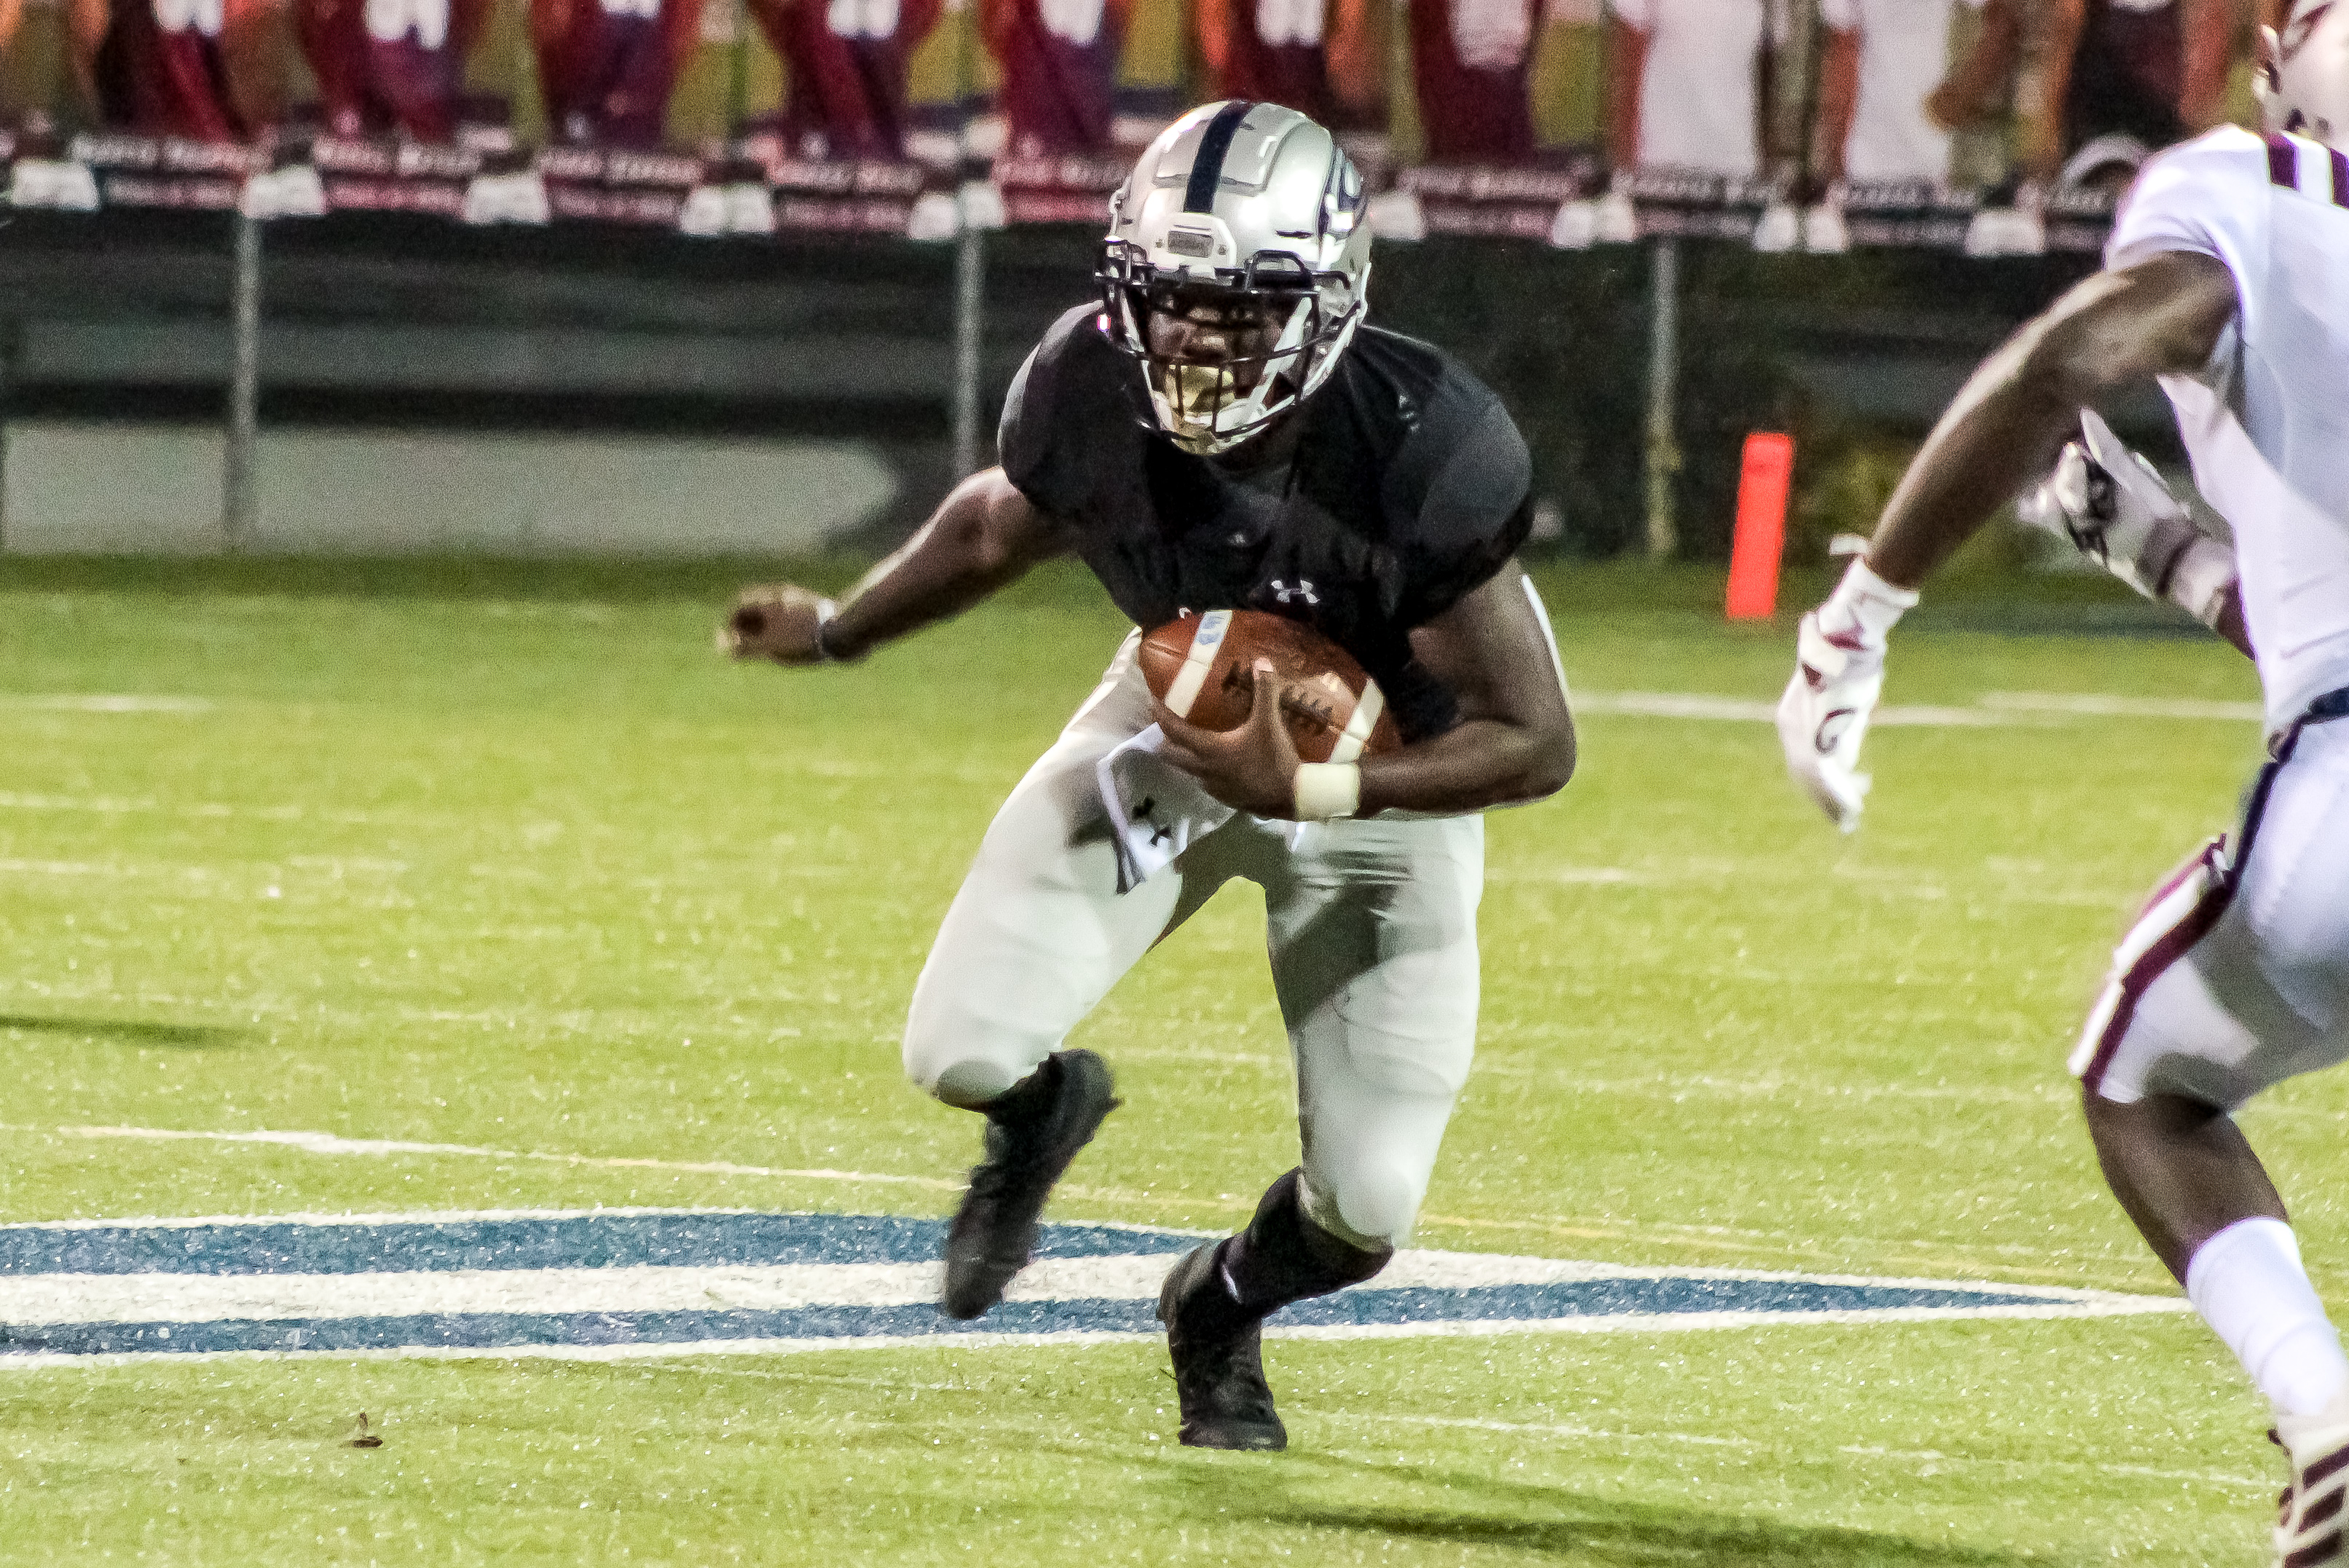 Clay-Chalkville Cougars